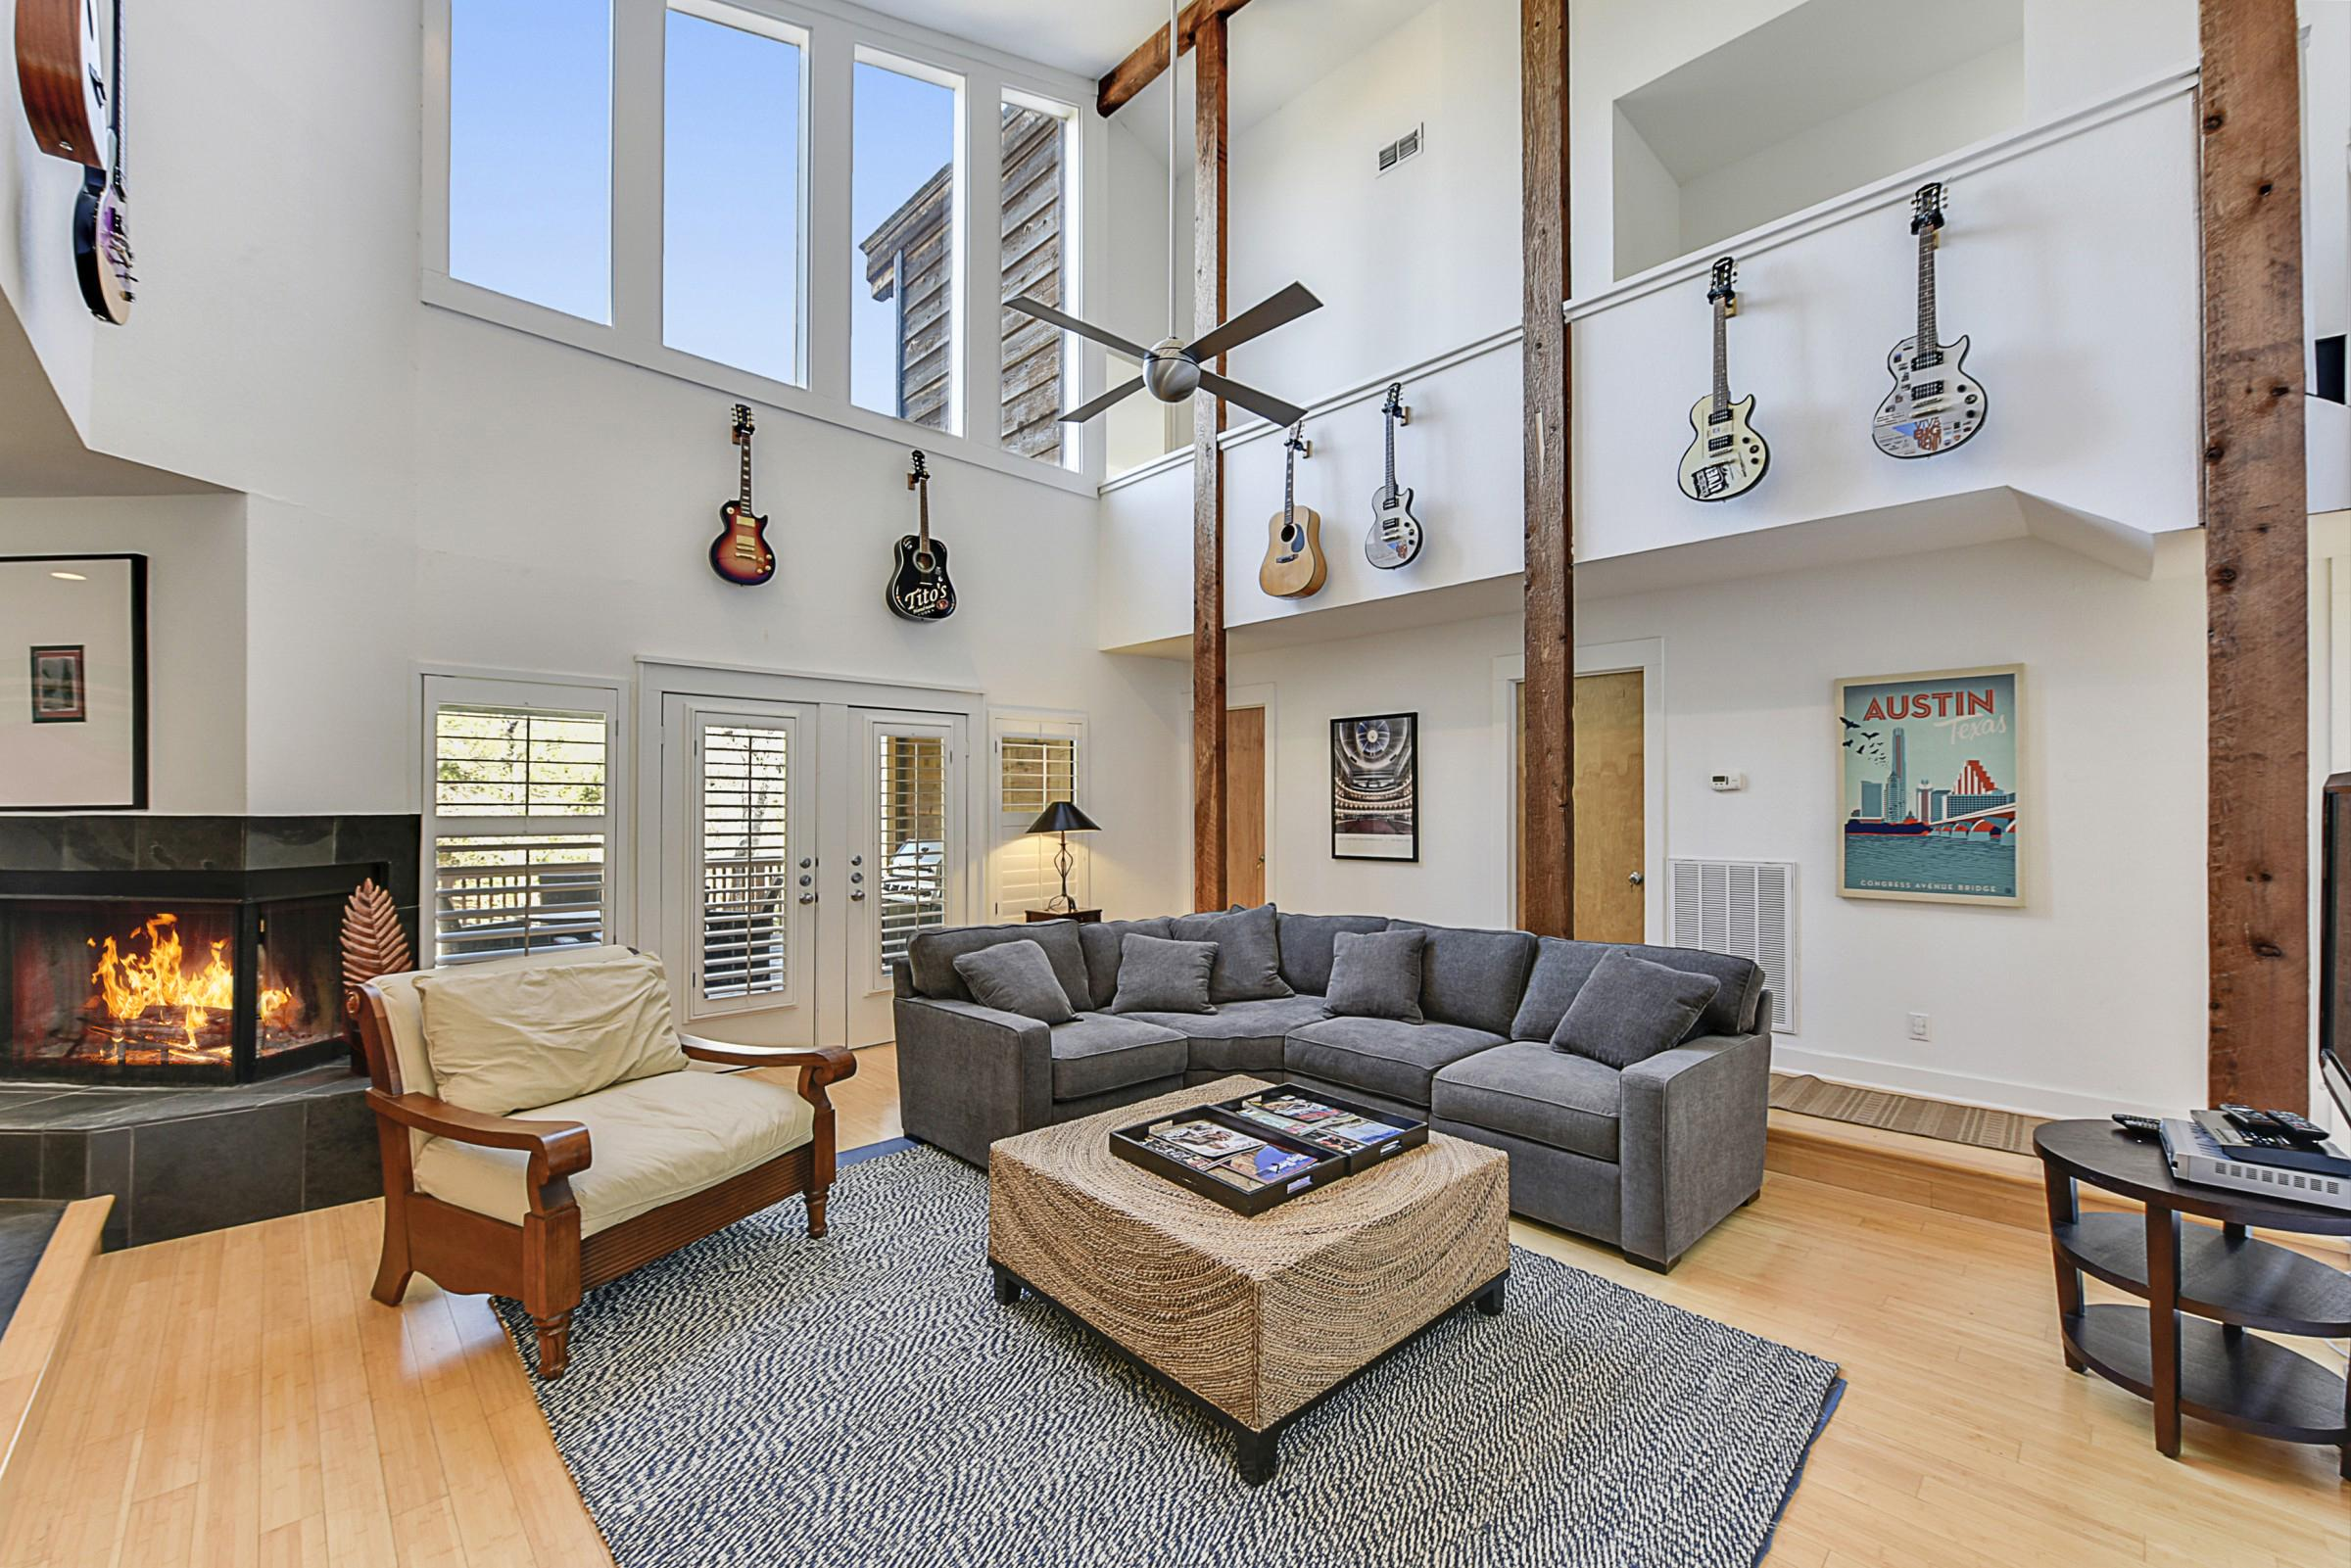 Property Image 1 - Standout Light-filled Home with Soaring Cathedral Ceilings